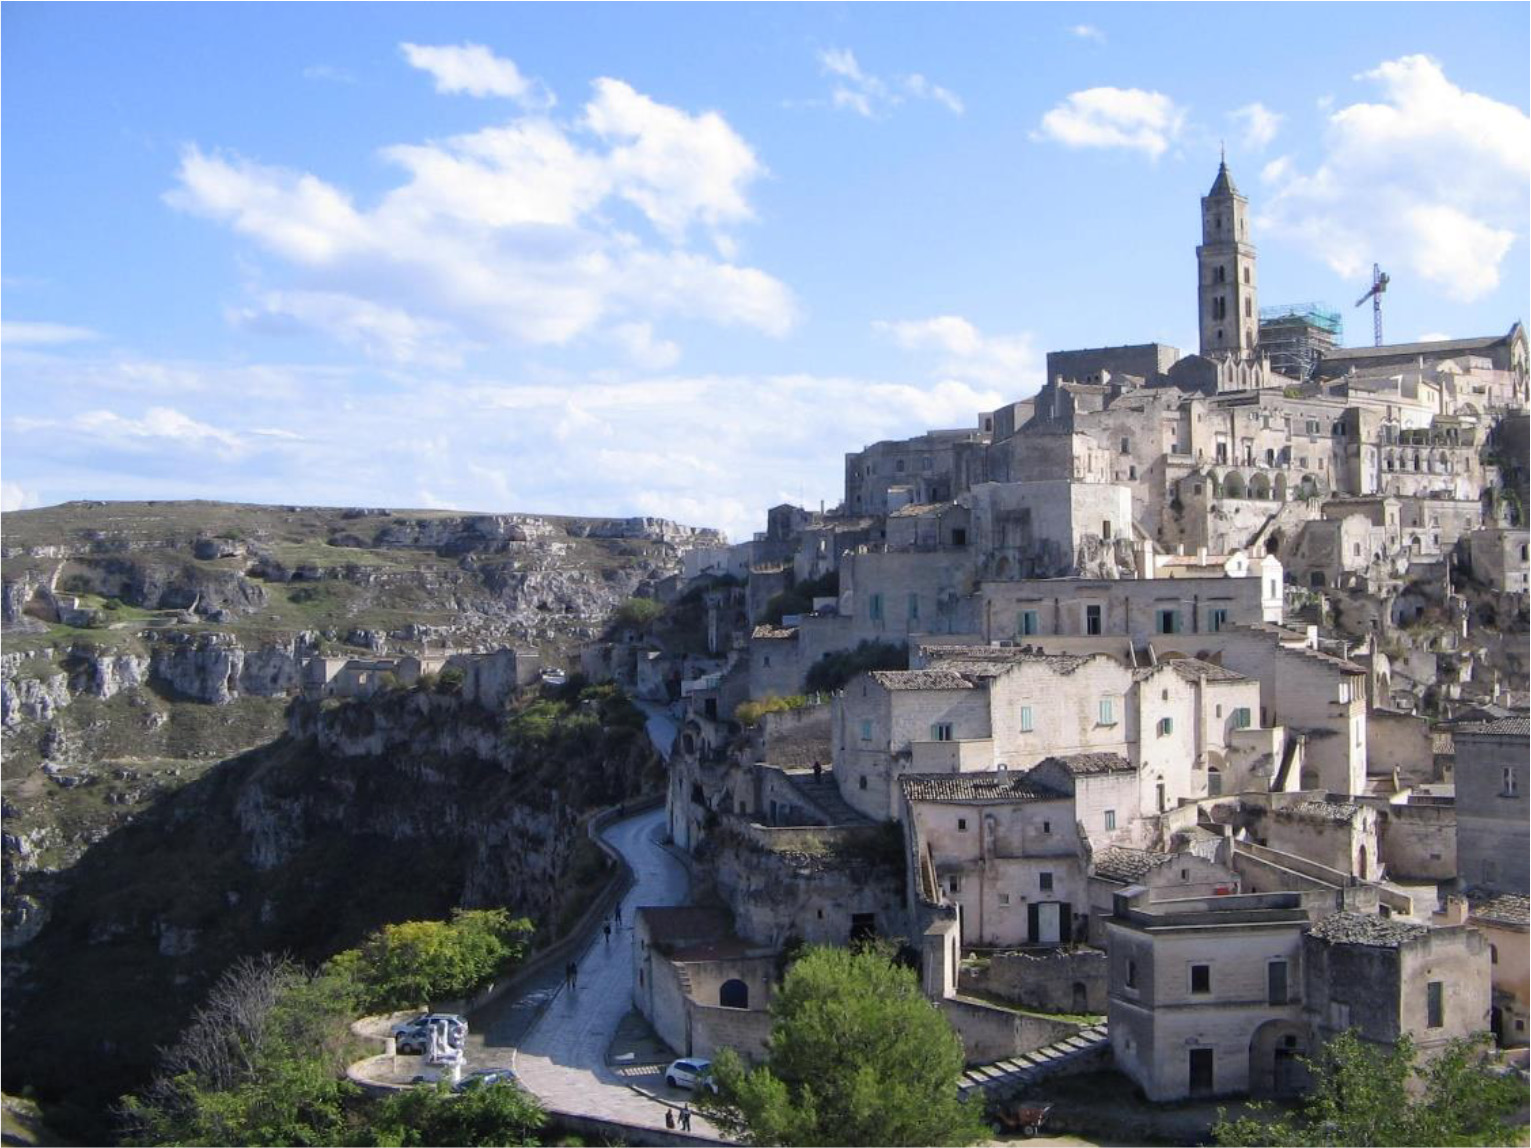 The historical centre of the city of Matera overlooking the Gravina canyon